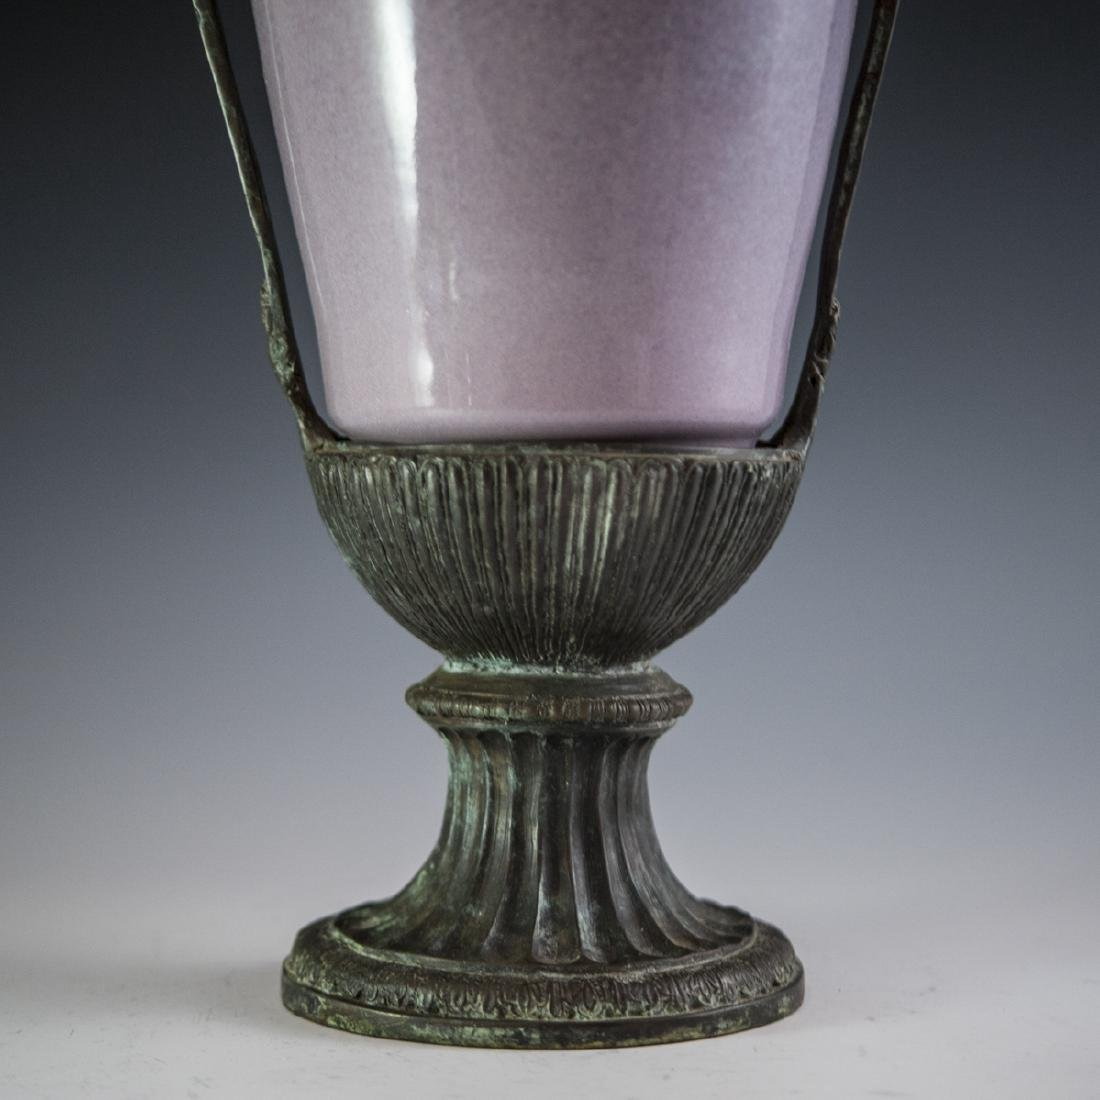 Decorative Porcelain & Bronze Vase - 4